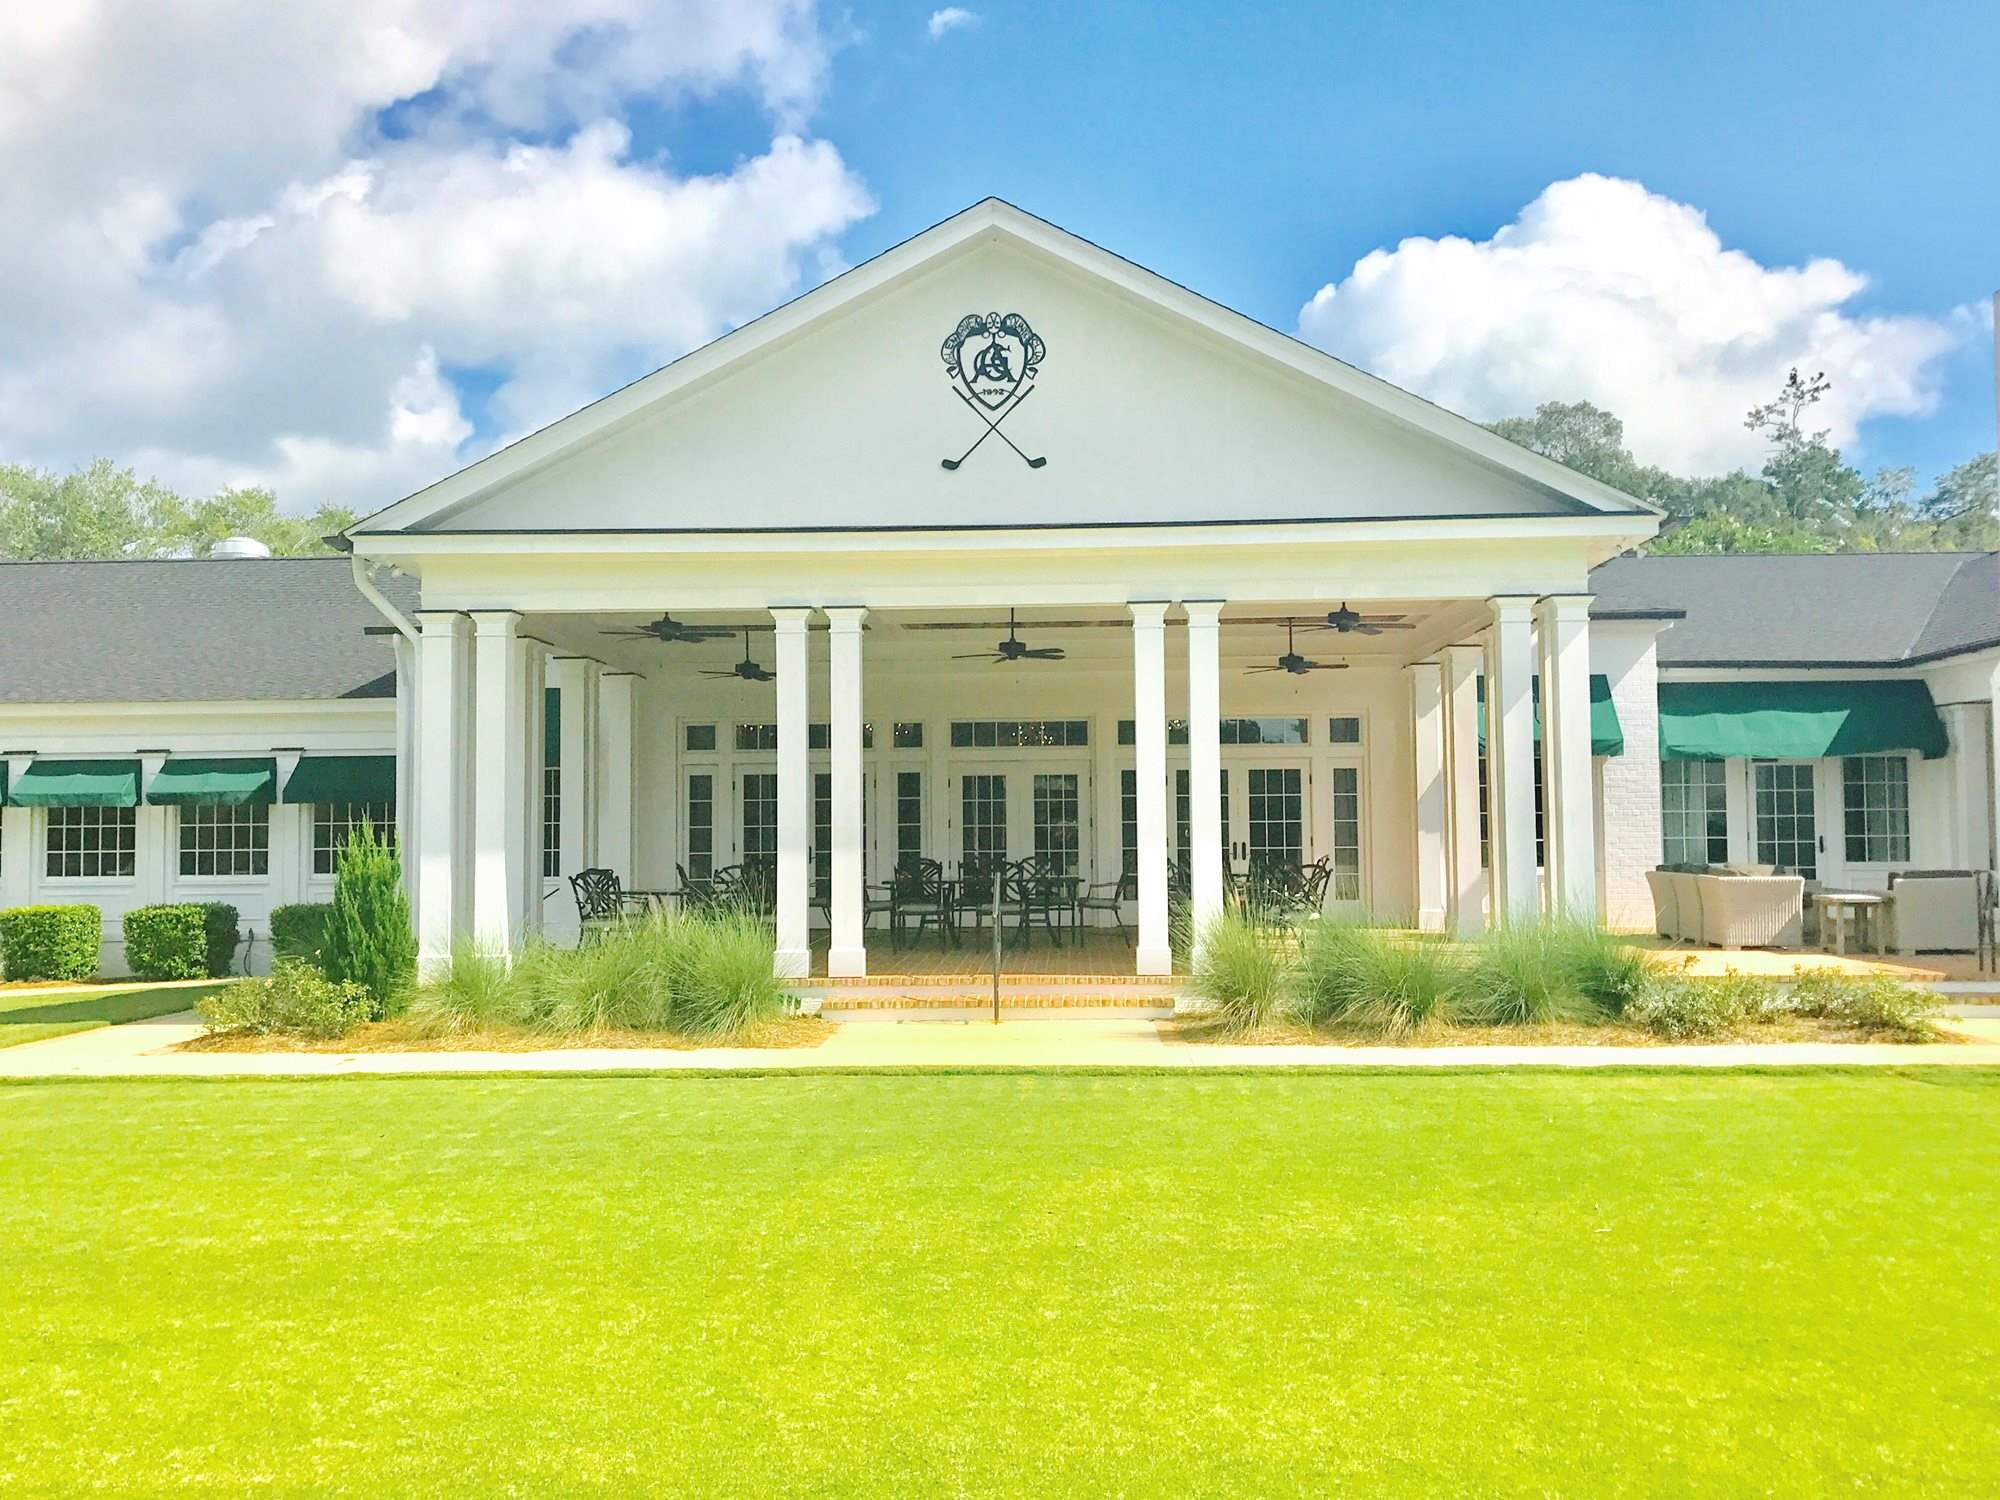 Off Road Design >> Glen Arven Country Club - Home